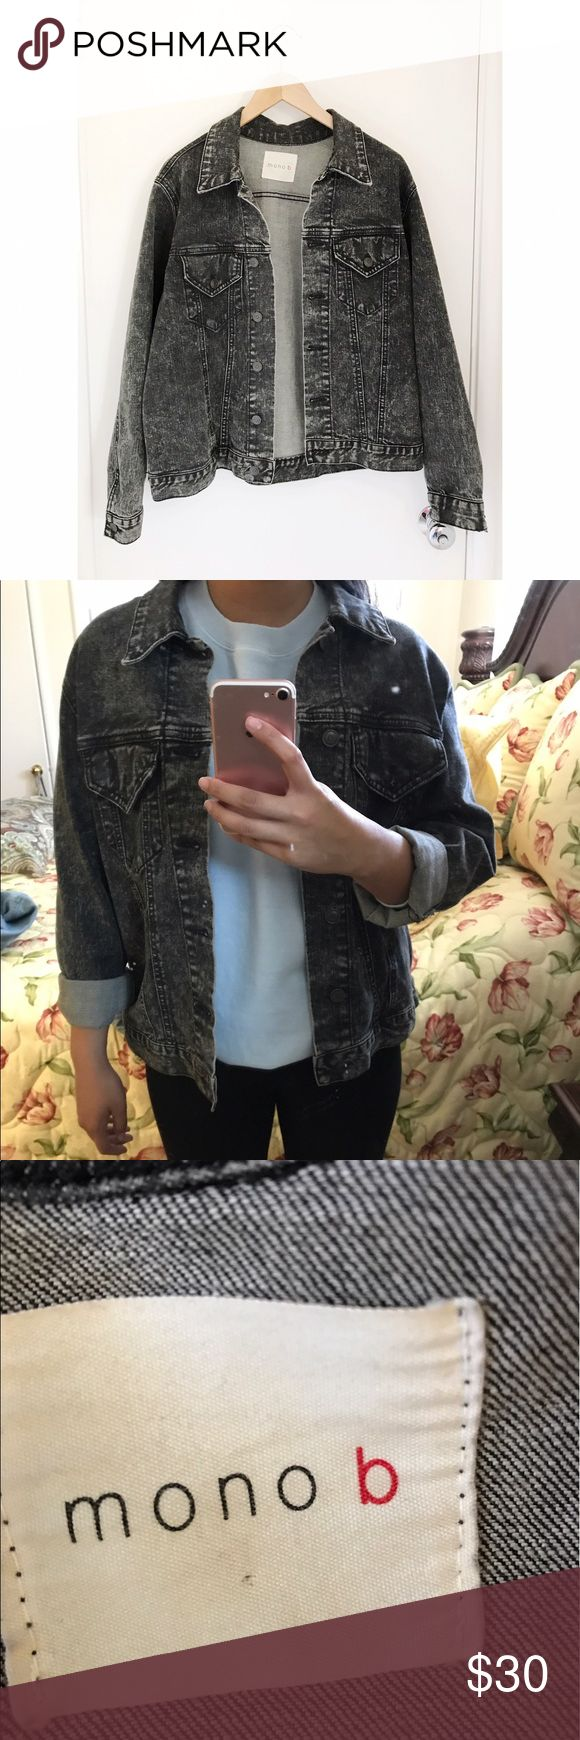 "Washed black oversized denim jacket Super cute washed black denim jacket . Brand is called mono b . Size unknown but it fit's like a women's large so it's the perfect oversized jacket . Measurements: pit to pit - 22.5"", length - 23.5"" . In perfect condition . Urban Outfitters Jackets & Coats Jean Jackets"